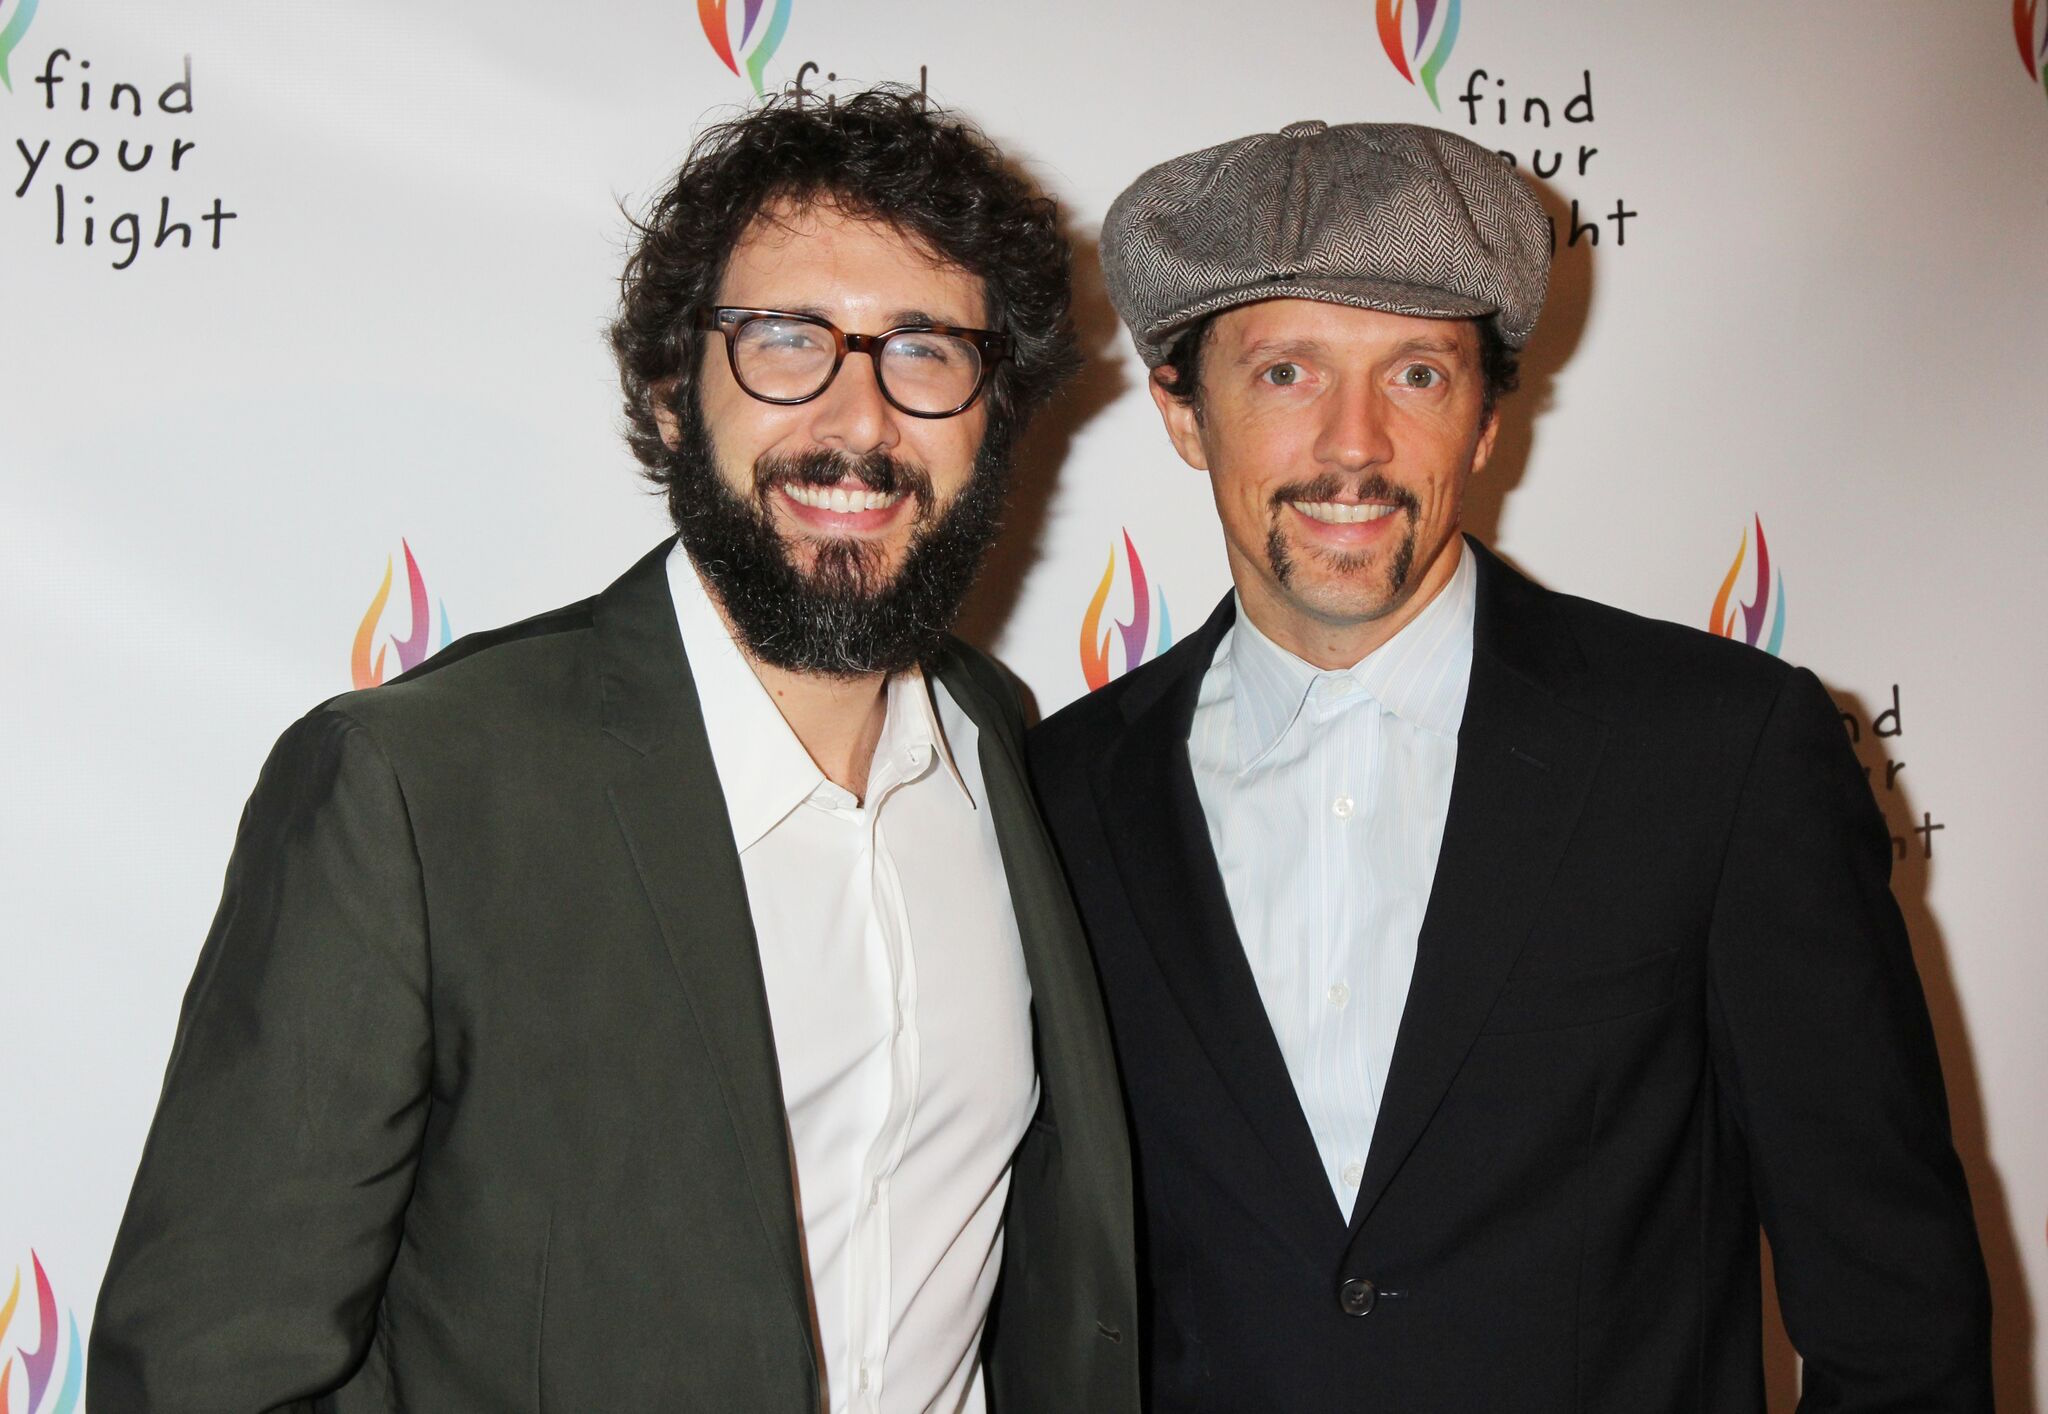 Josh Groban and Jason Mraz at last year's event